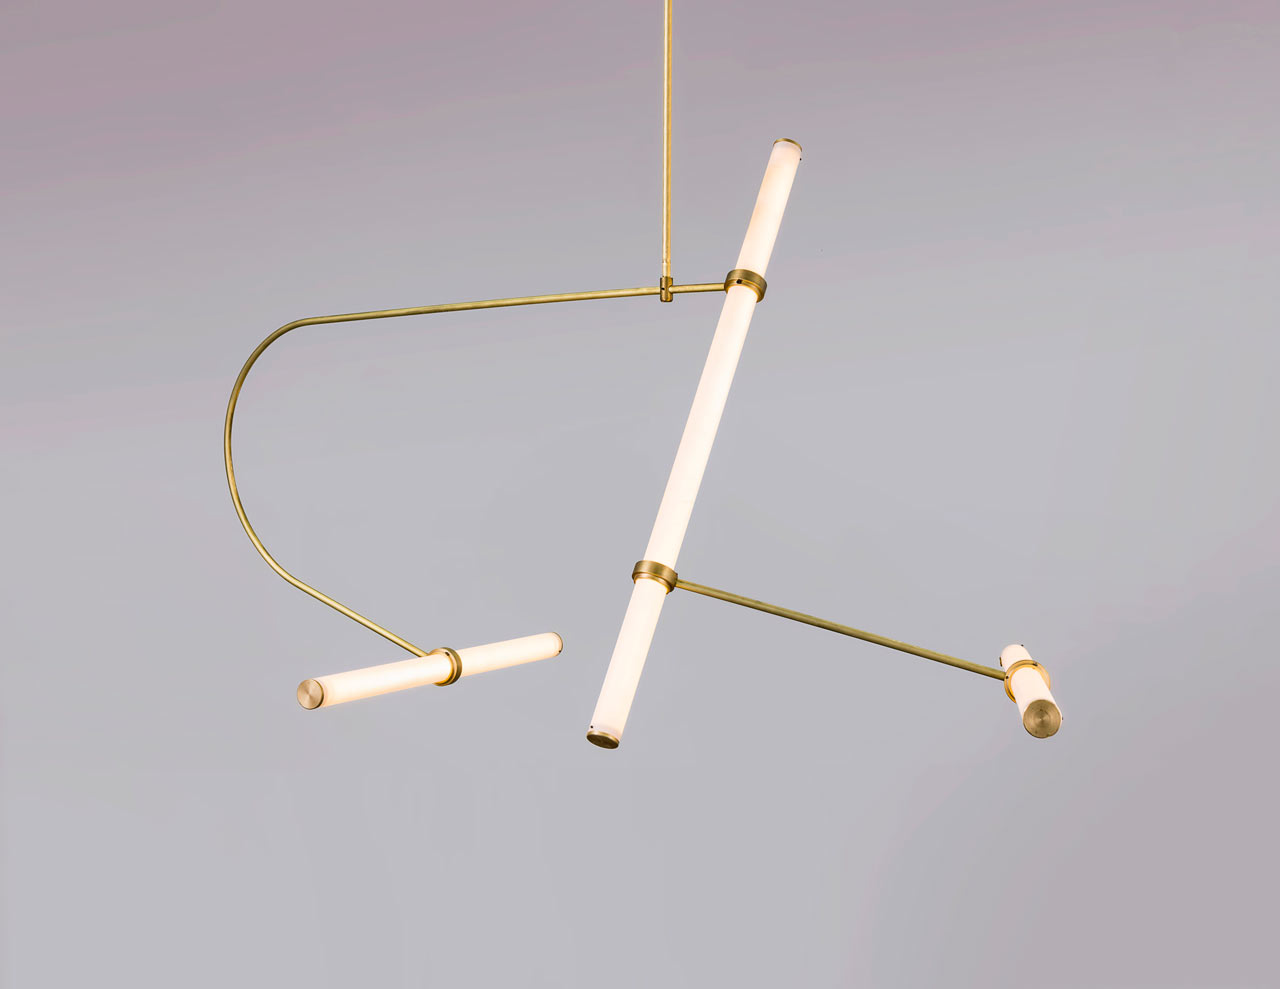 Tube Pendant Collection by Studio Naama Hofman